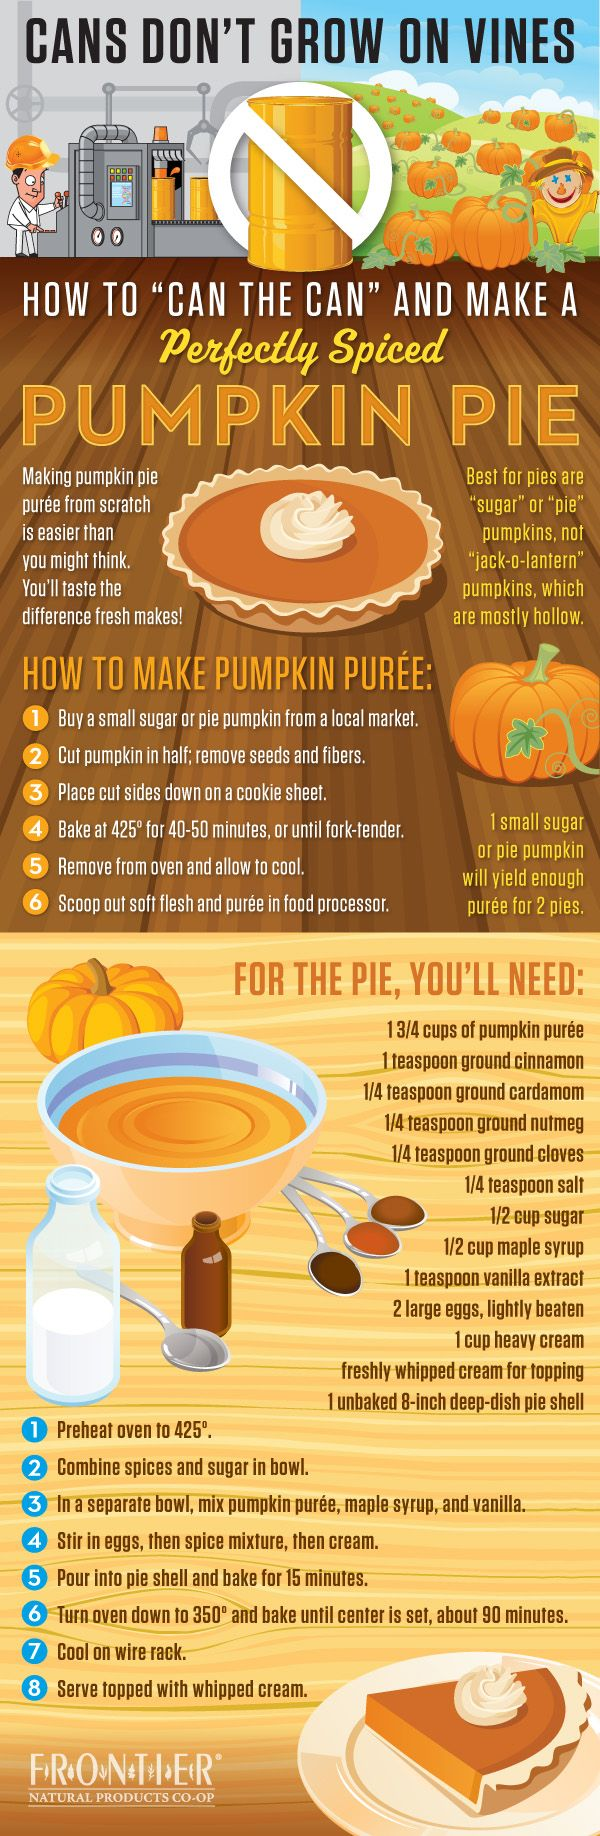 How to make pumpkin puree from scratch... it's easier than you think! #Thanksgiving